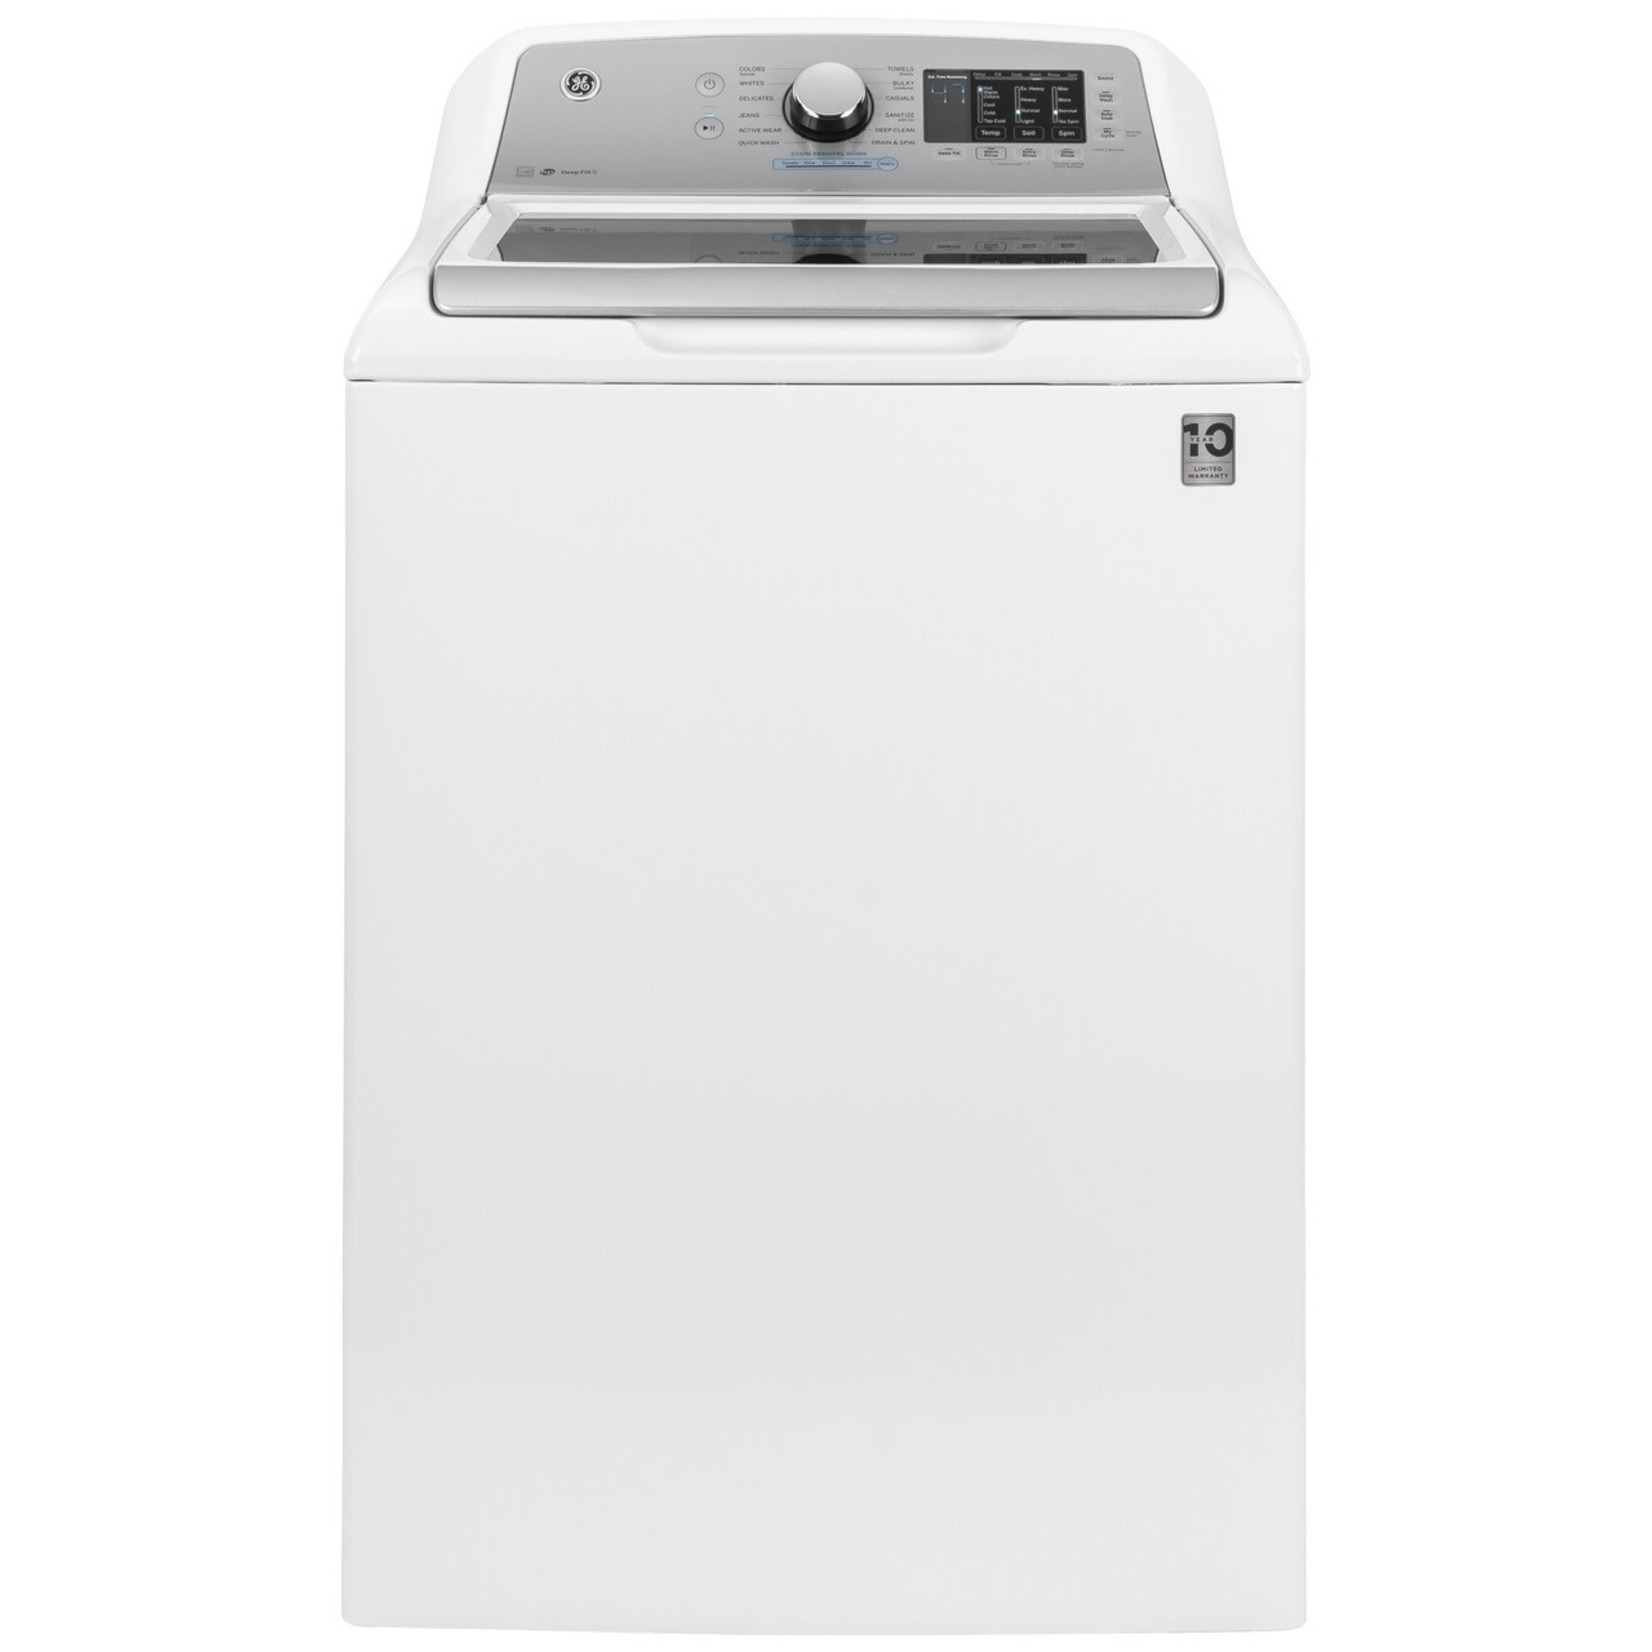 GE GE 4.8 CU. FT. CAPACITY WASHER WITH SANITIZE W/OXI AND FLEX DISPENSE